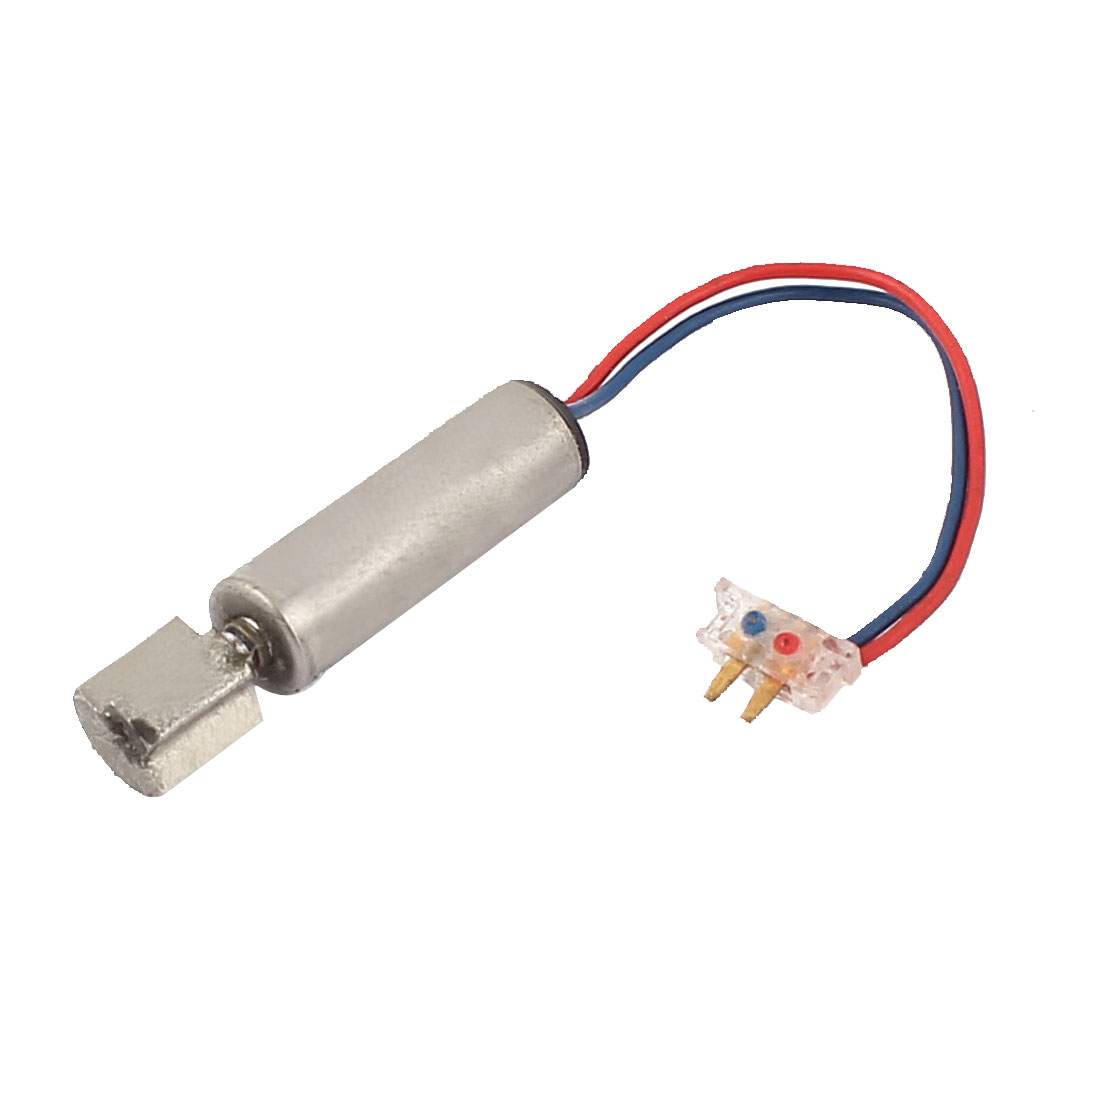 DC 1.5V-4.5V 0.22A 4mmx12mm Micro Coreless Vibration Motor for Cell Phone